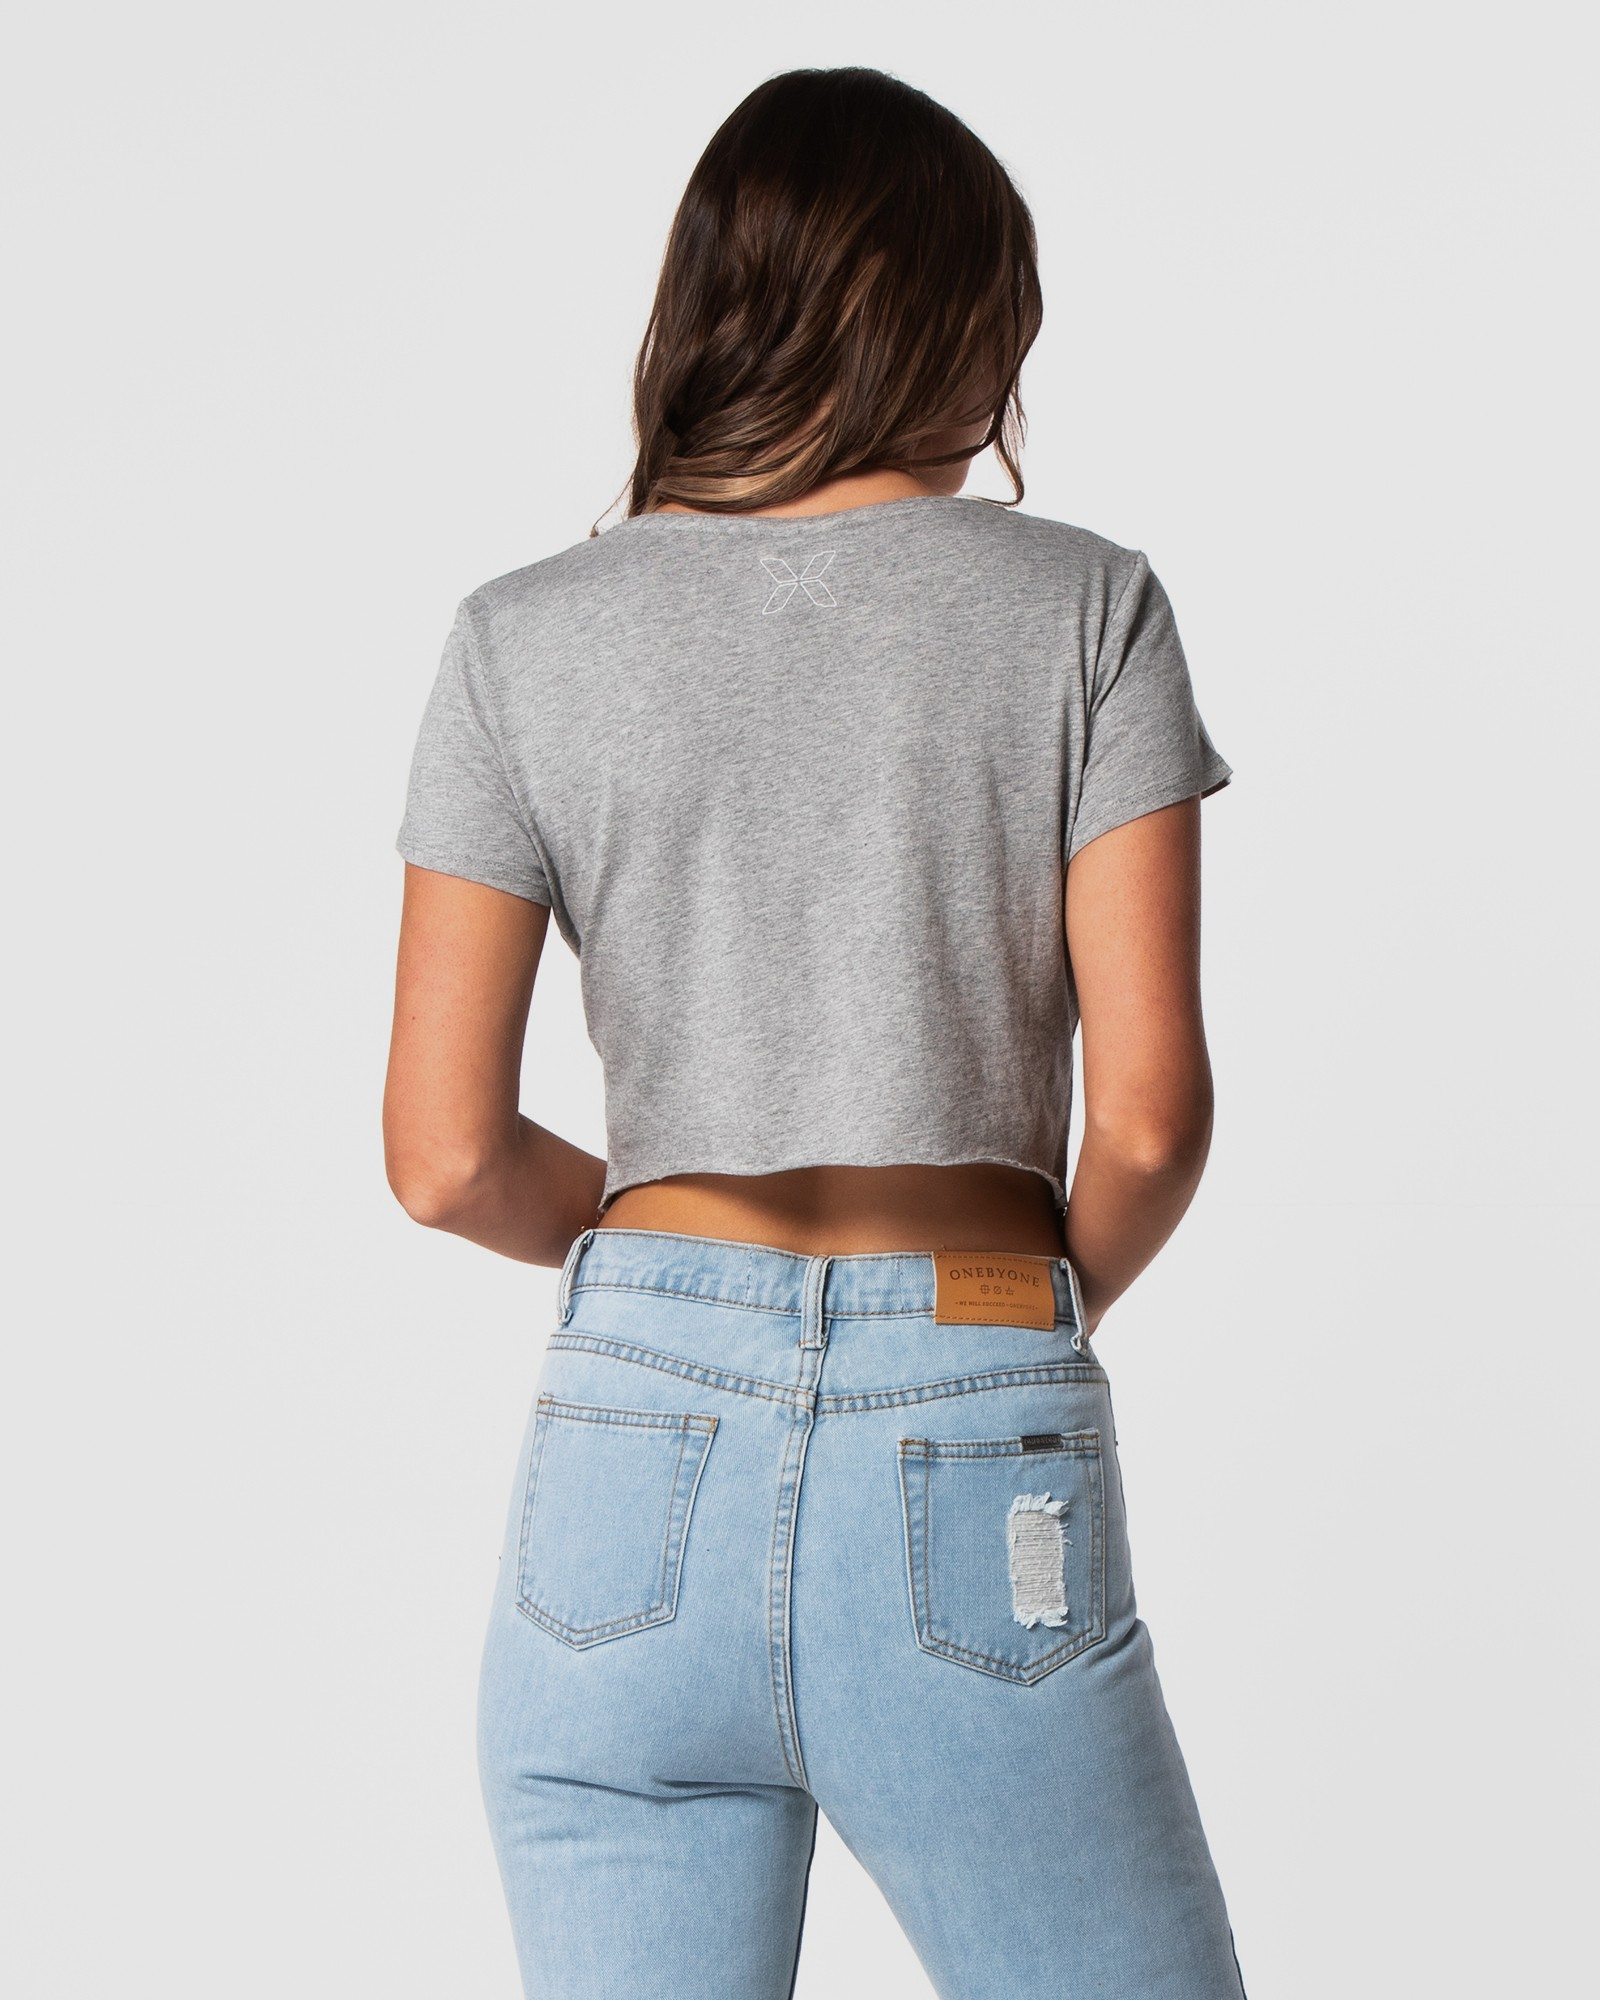 CLASSIC MARBLE GREY CROP